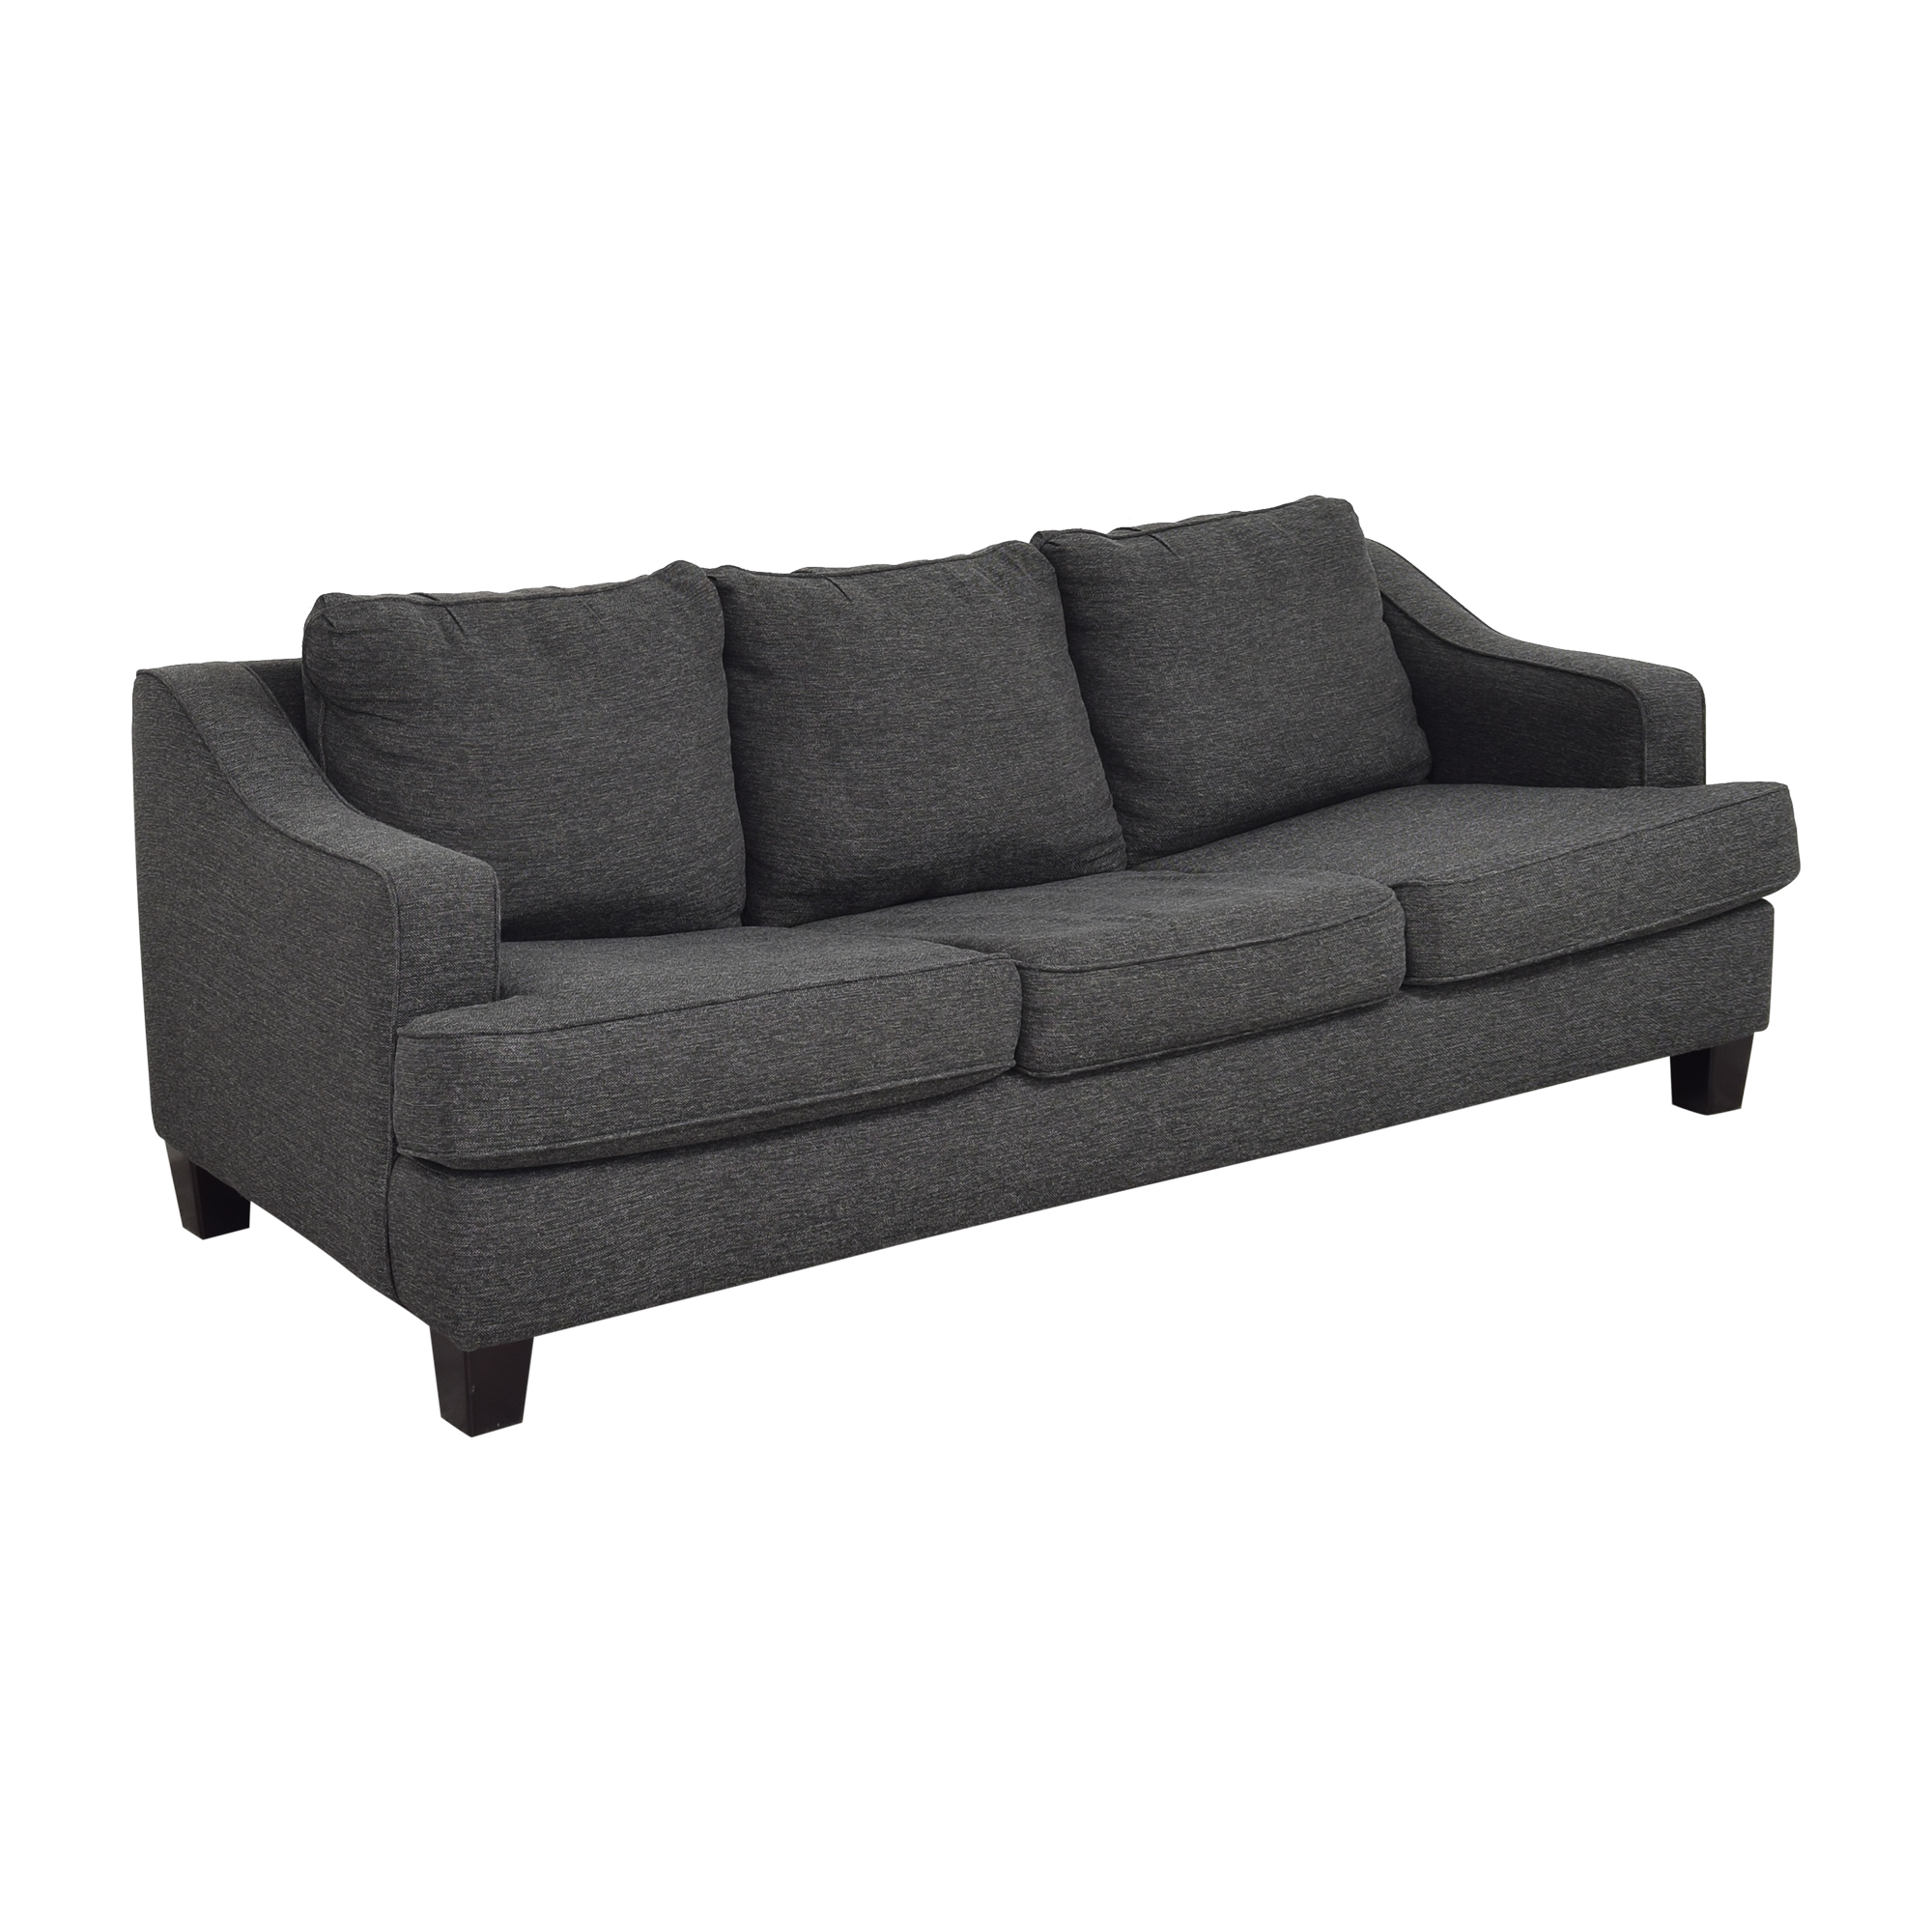 Raymour & Flanigan Raymour & Flanigan Modern Queen Sleeper Sofa dimensions